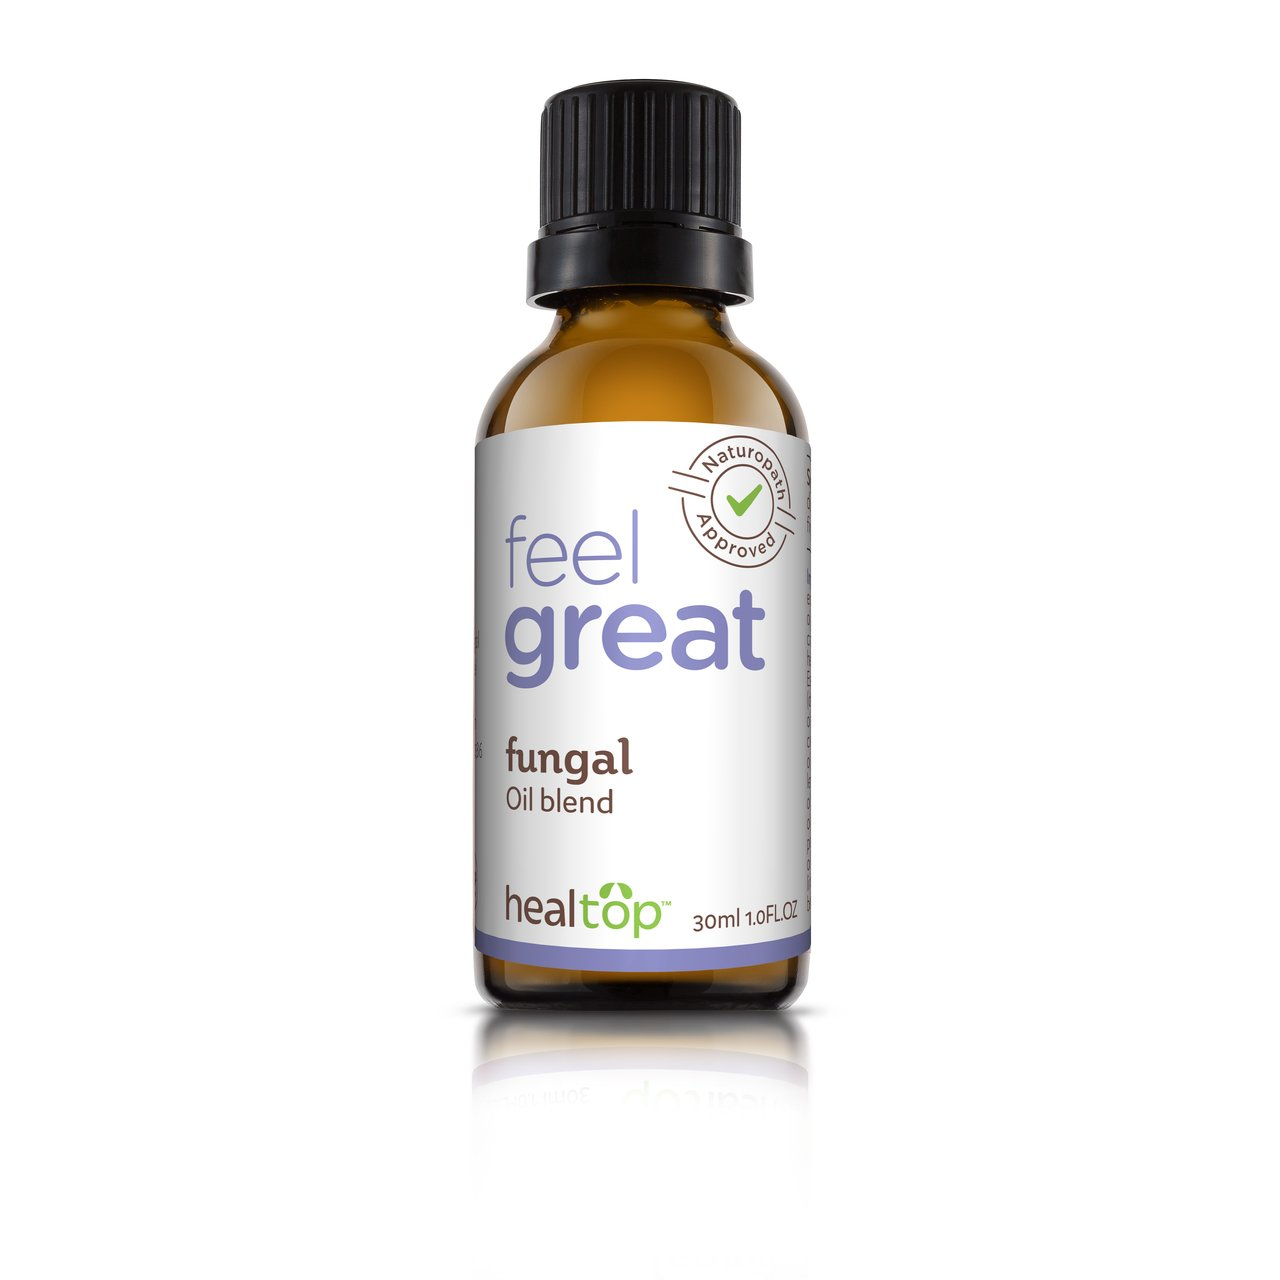 Healtop Fungal 17 Natural Effective Ingredients Oil Bland Antifungal Athlete Foot Care 1 FL OZ - Make Foots Happy